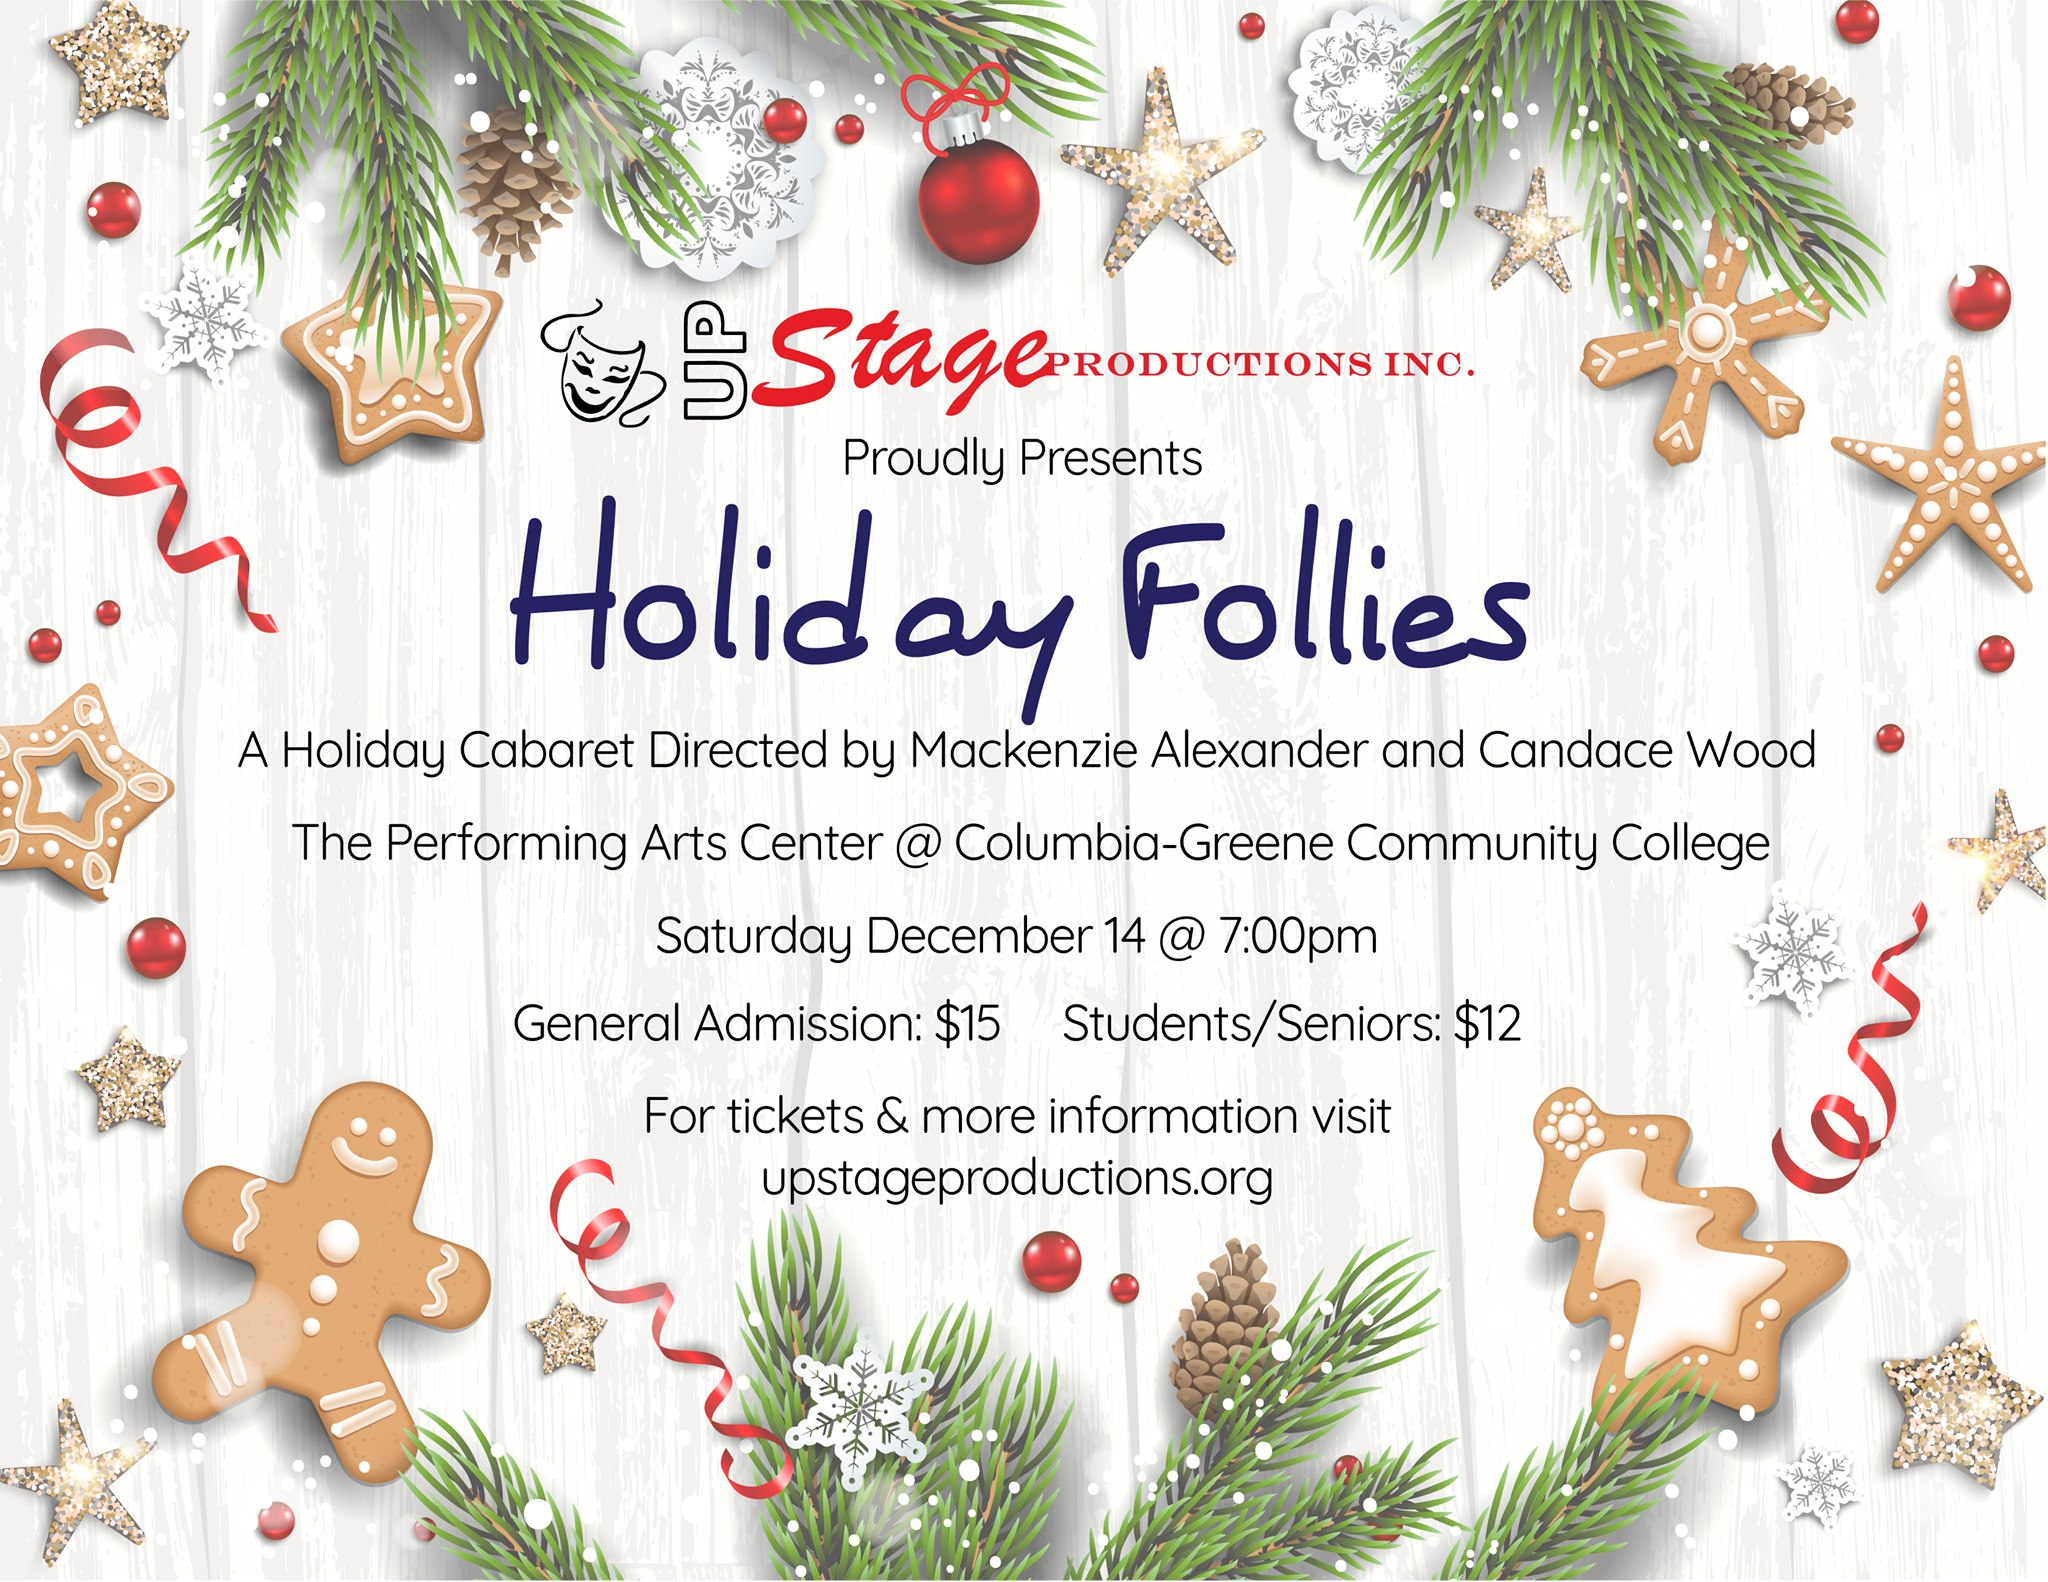 holiday follies poster